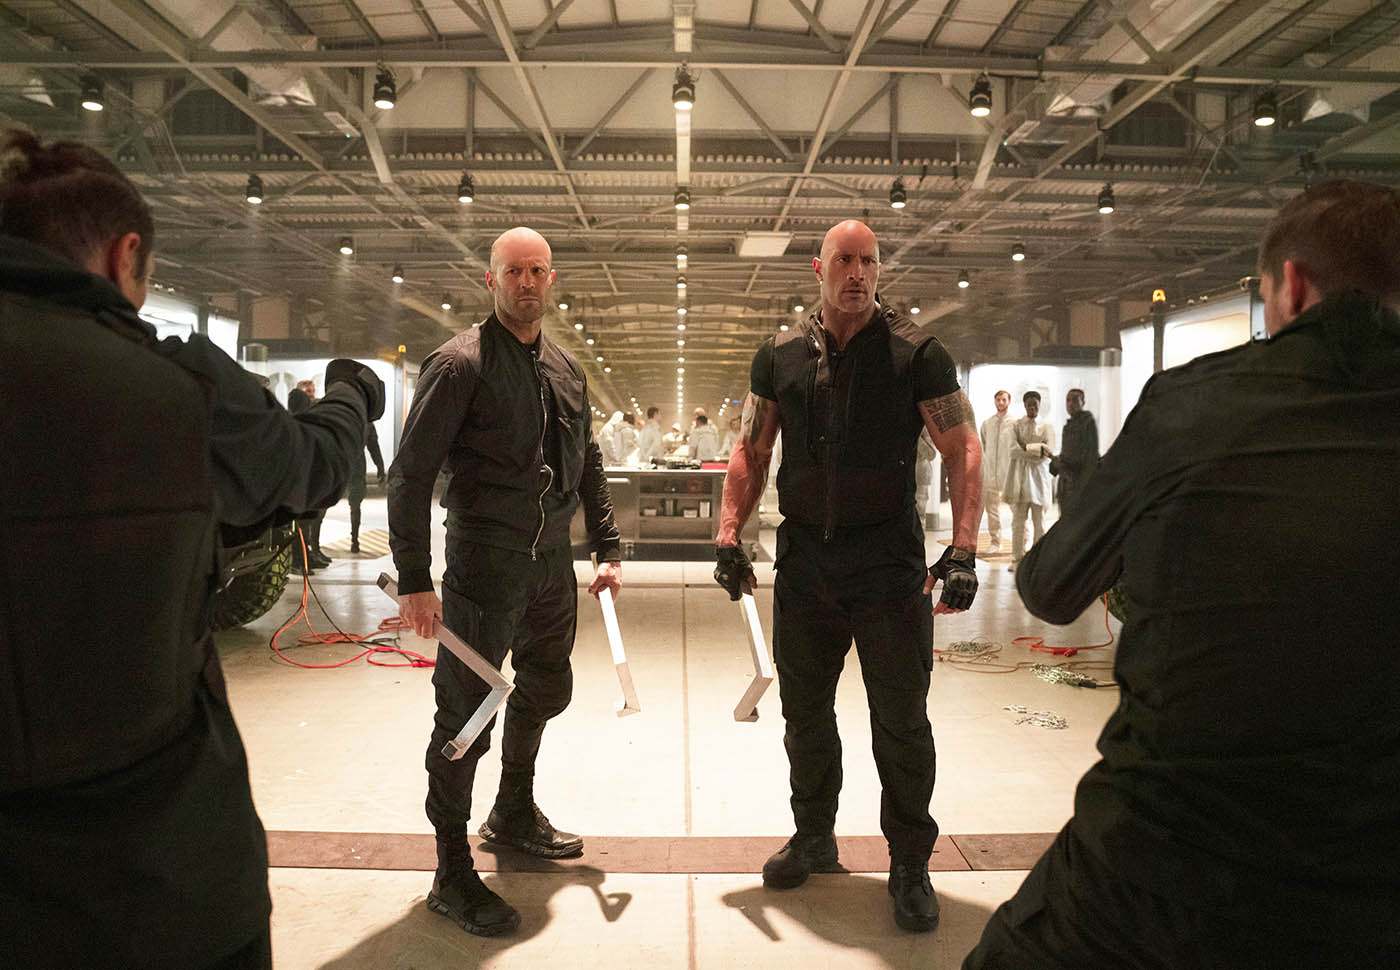 Deckard Shaw (Jason Statham) and Luke Hobbs (Dwayne Johnson) cernés